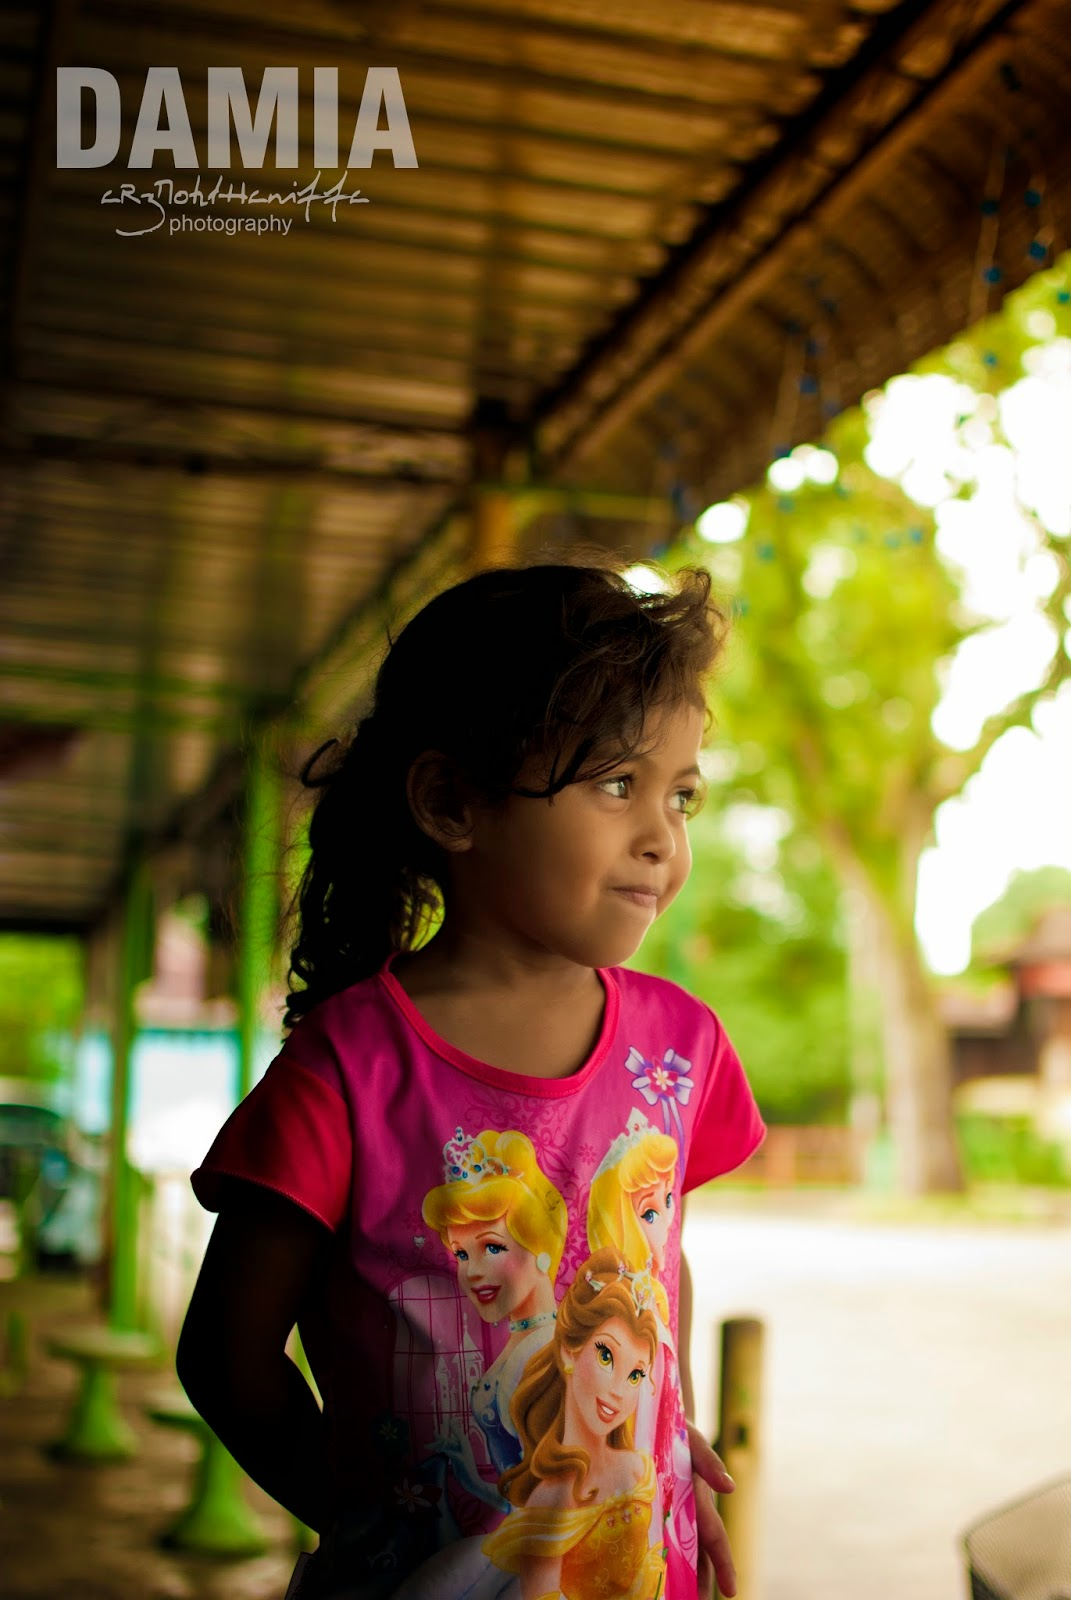 Kids, Kanak-kanak, Girl, Nephew, kids world, gambar cantik, kids photography